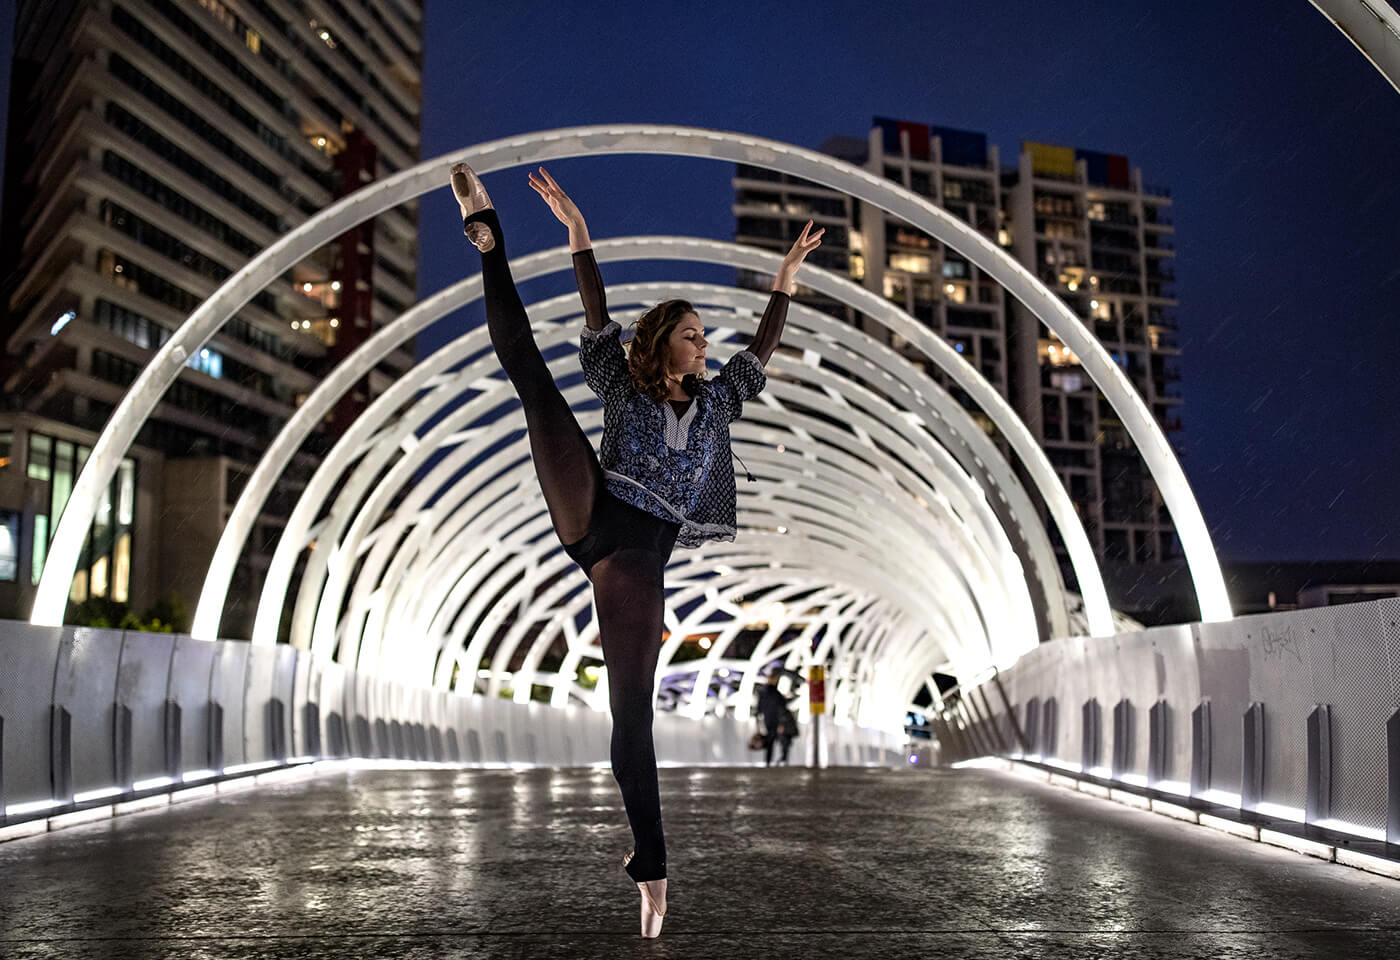 Ballet dancer photographed performing on bridge at night